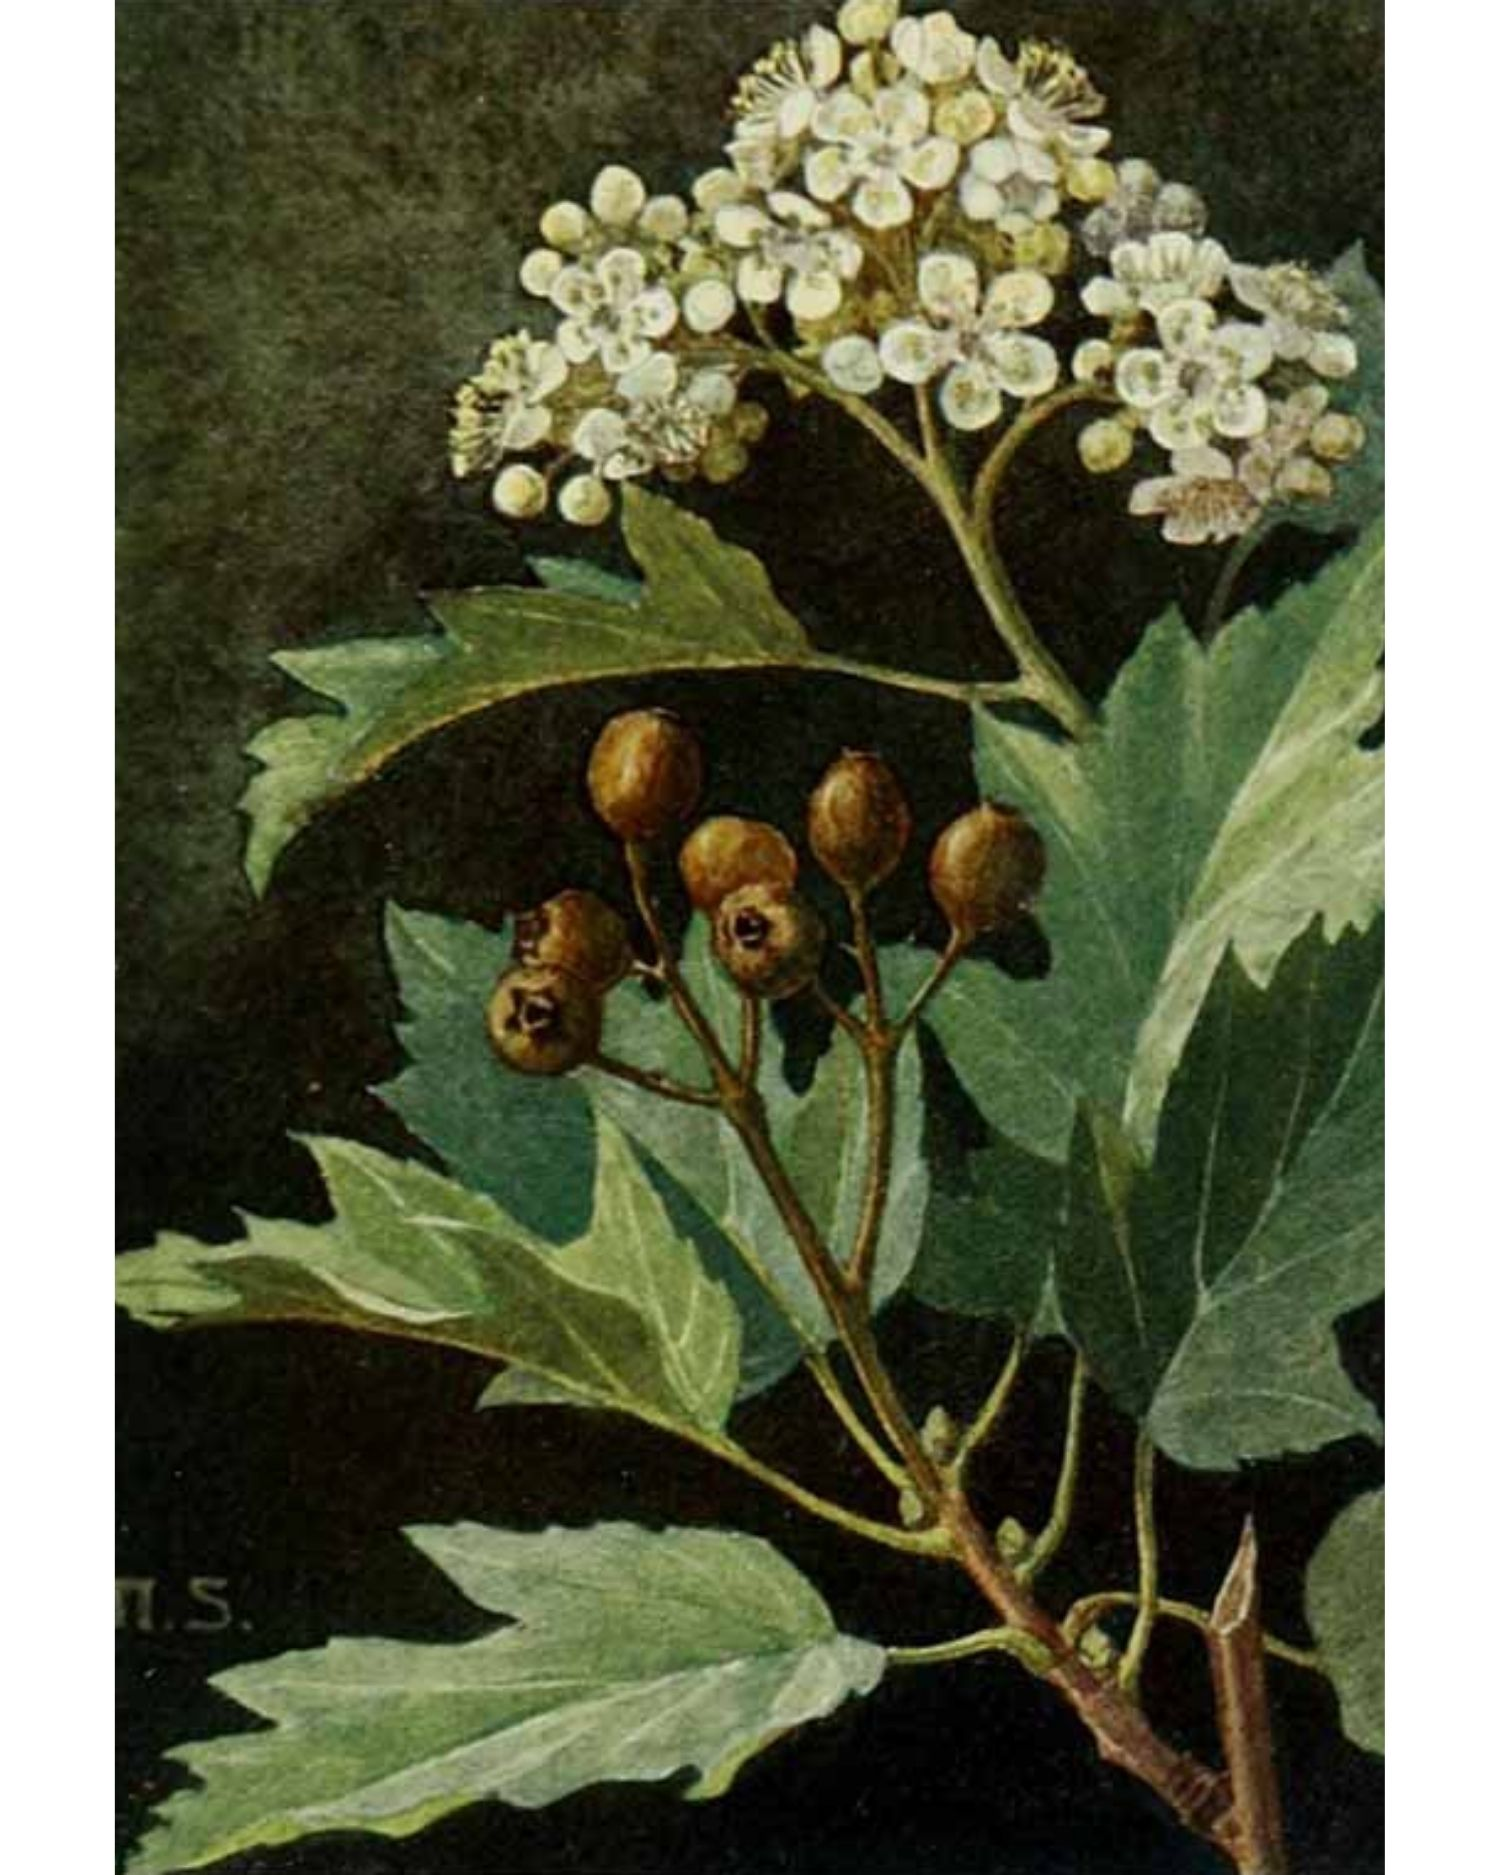 Wild Service or Chequers Tree - A Foraging Guide to Its Food, Medicine and Other Uses